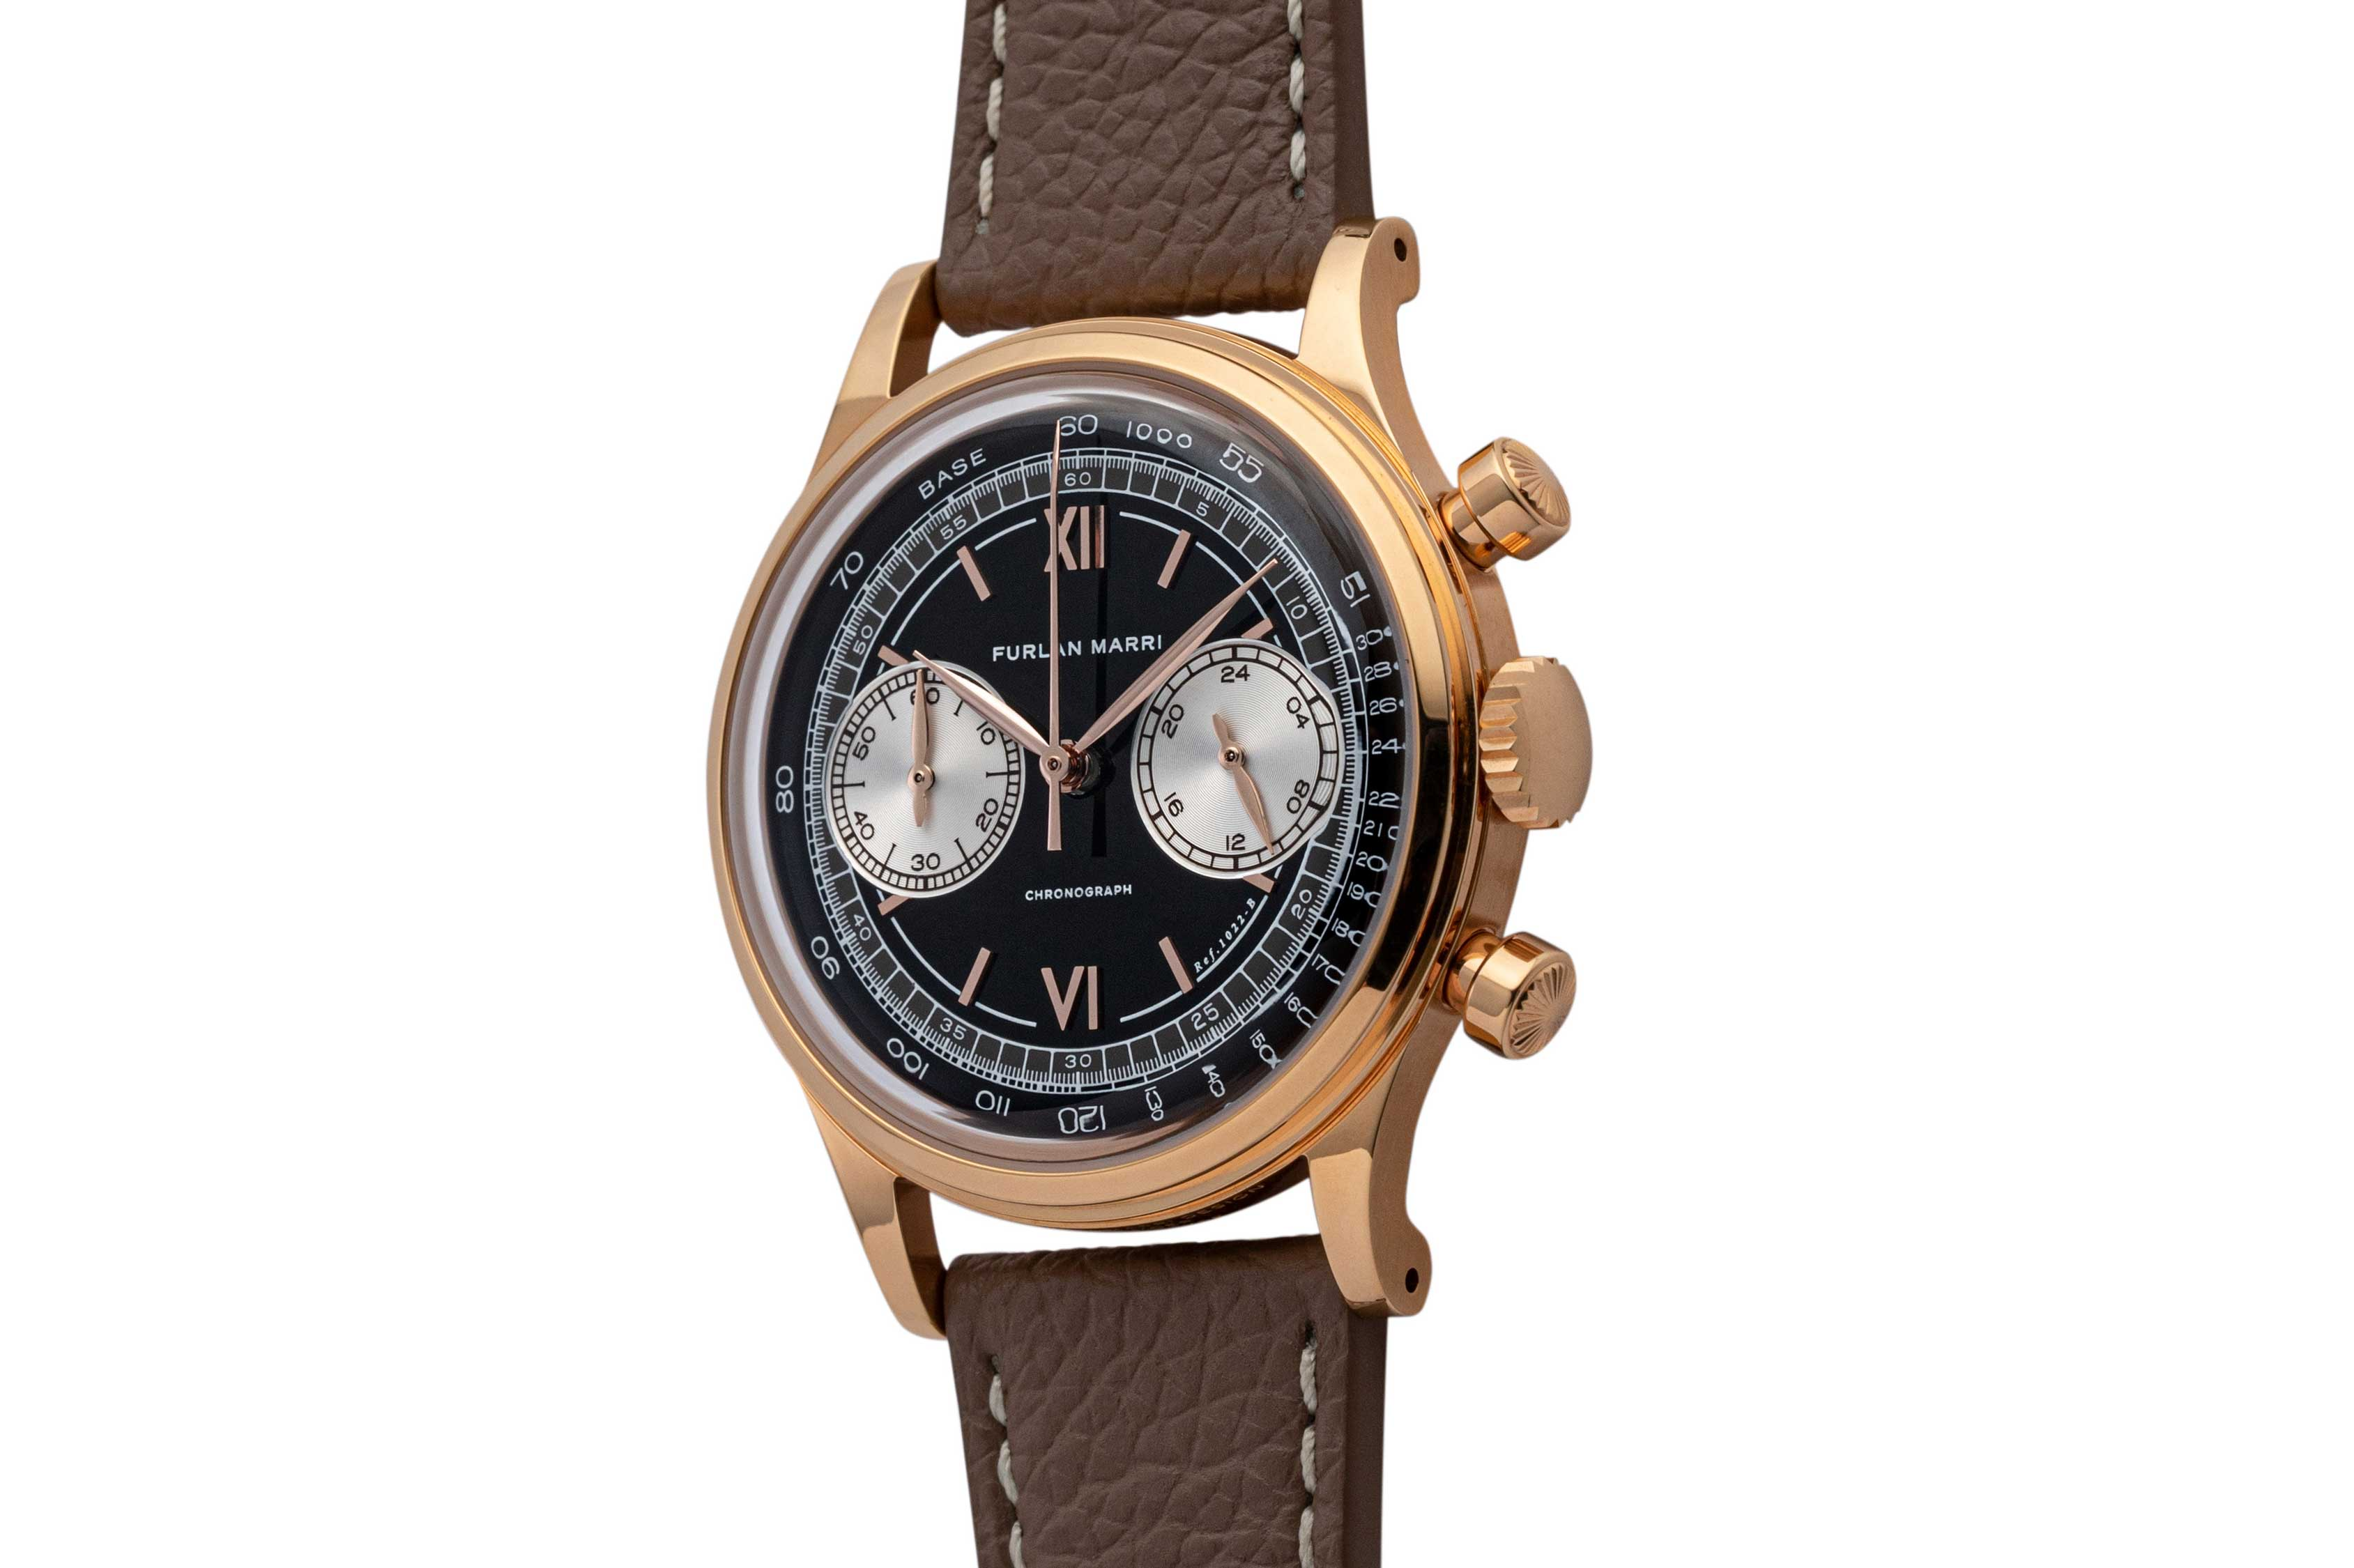 Check out how the crown and pushers are in the same styling at the François Borgel case of the Patek Philippe Chronograph ref. 1463 (©Revolution)